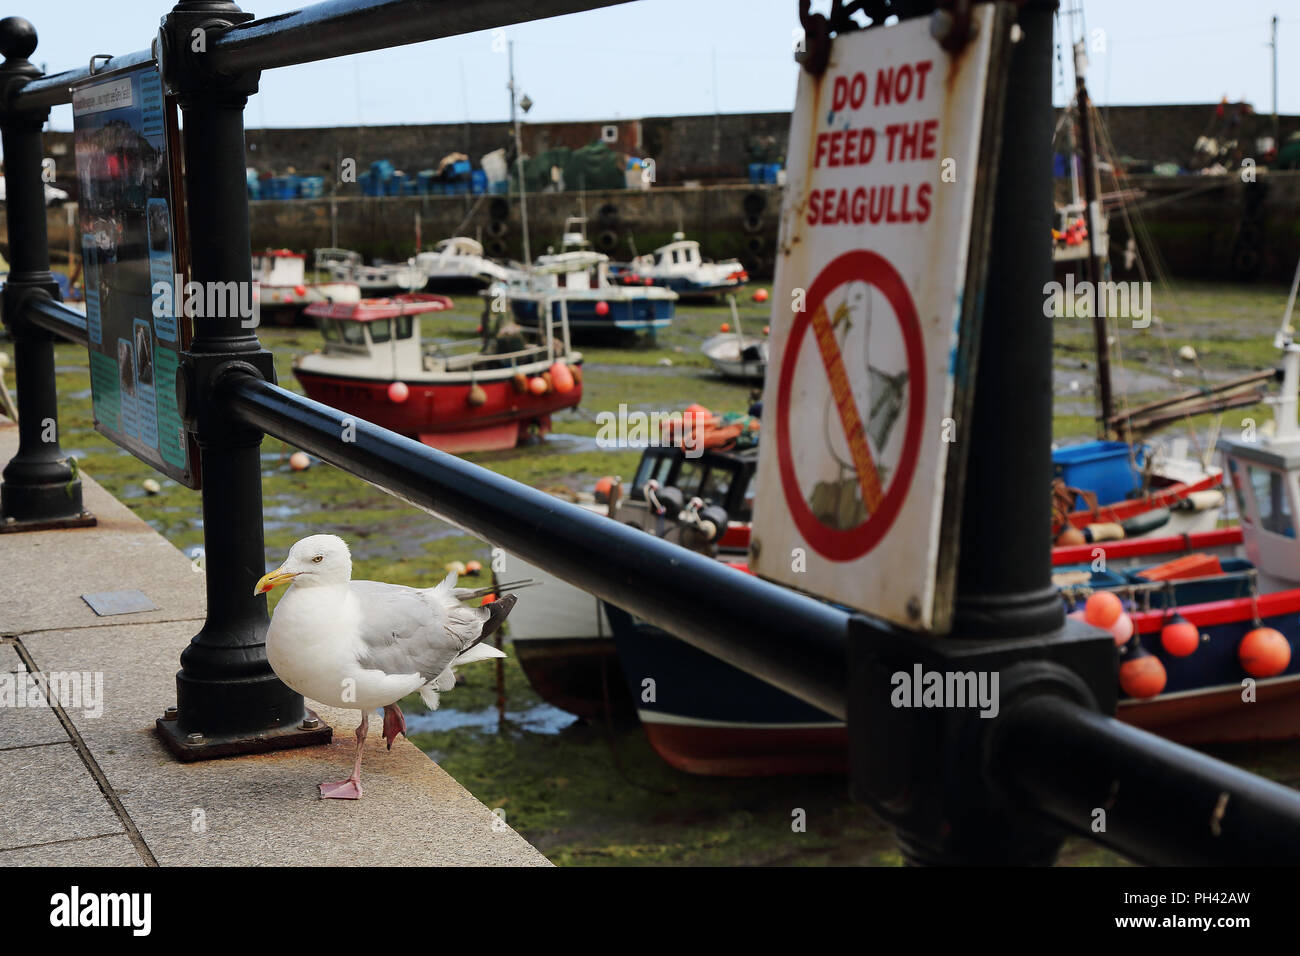 A seagull stands by a notice banning the feeding of such birds in Mevagissey Harbour, Cornwall, UK. Stock Photo